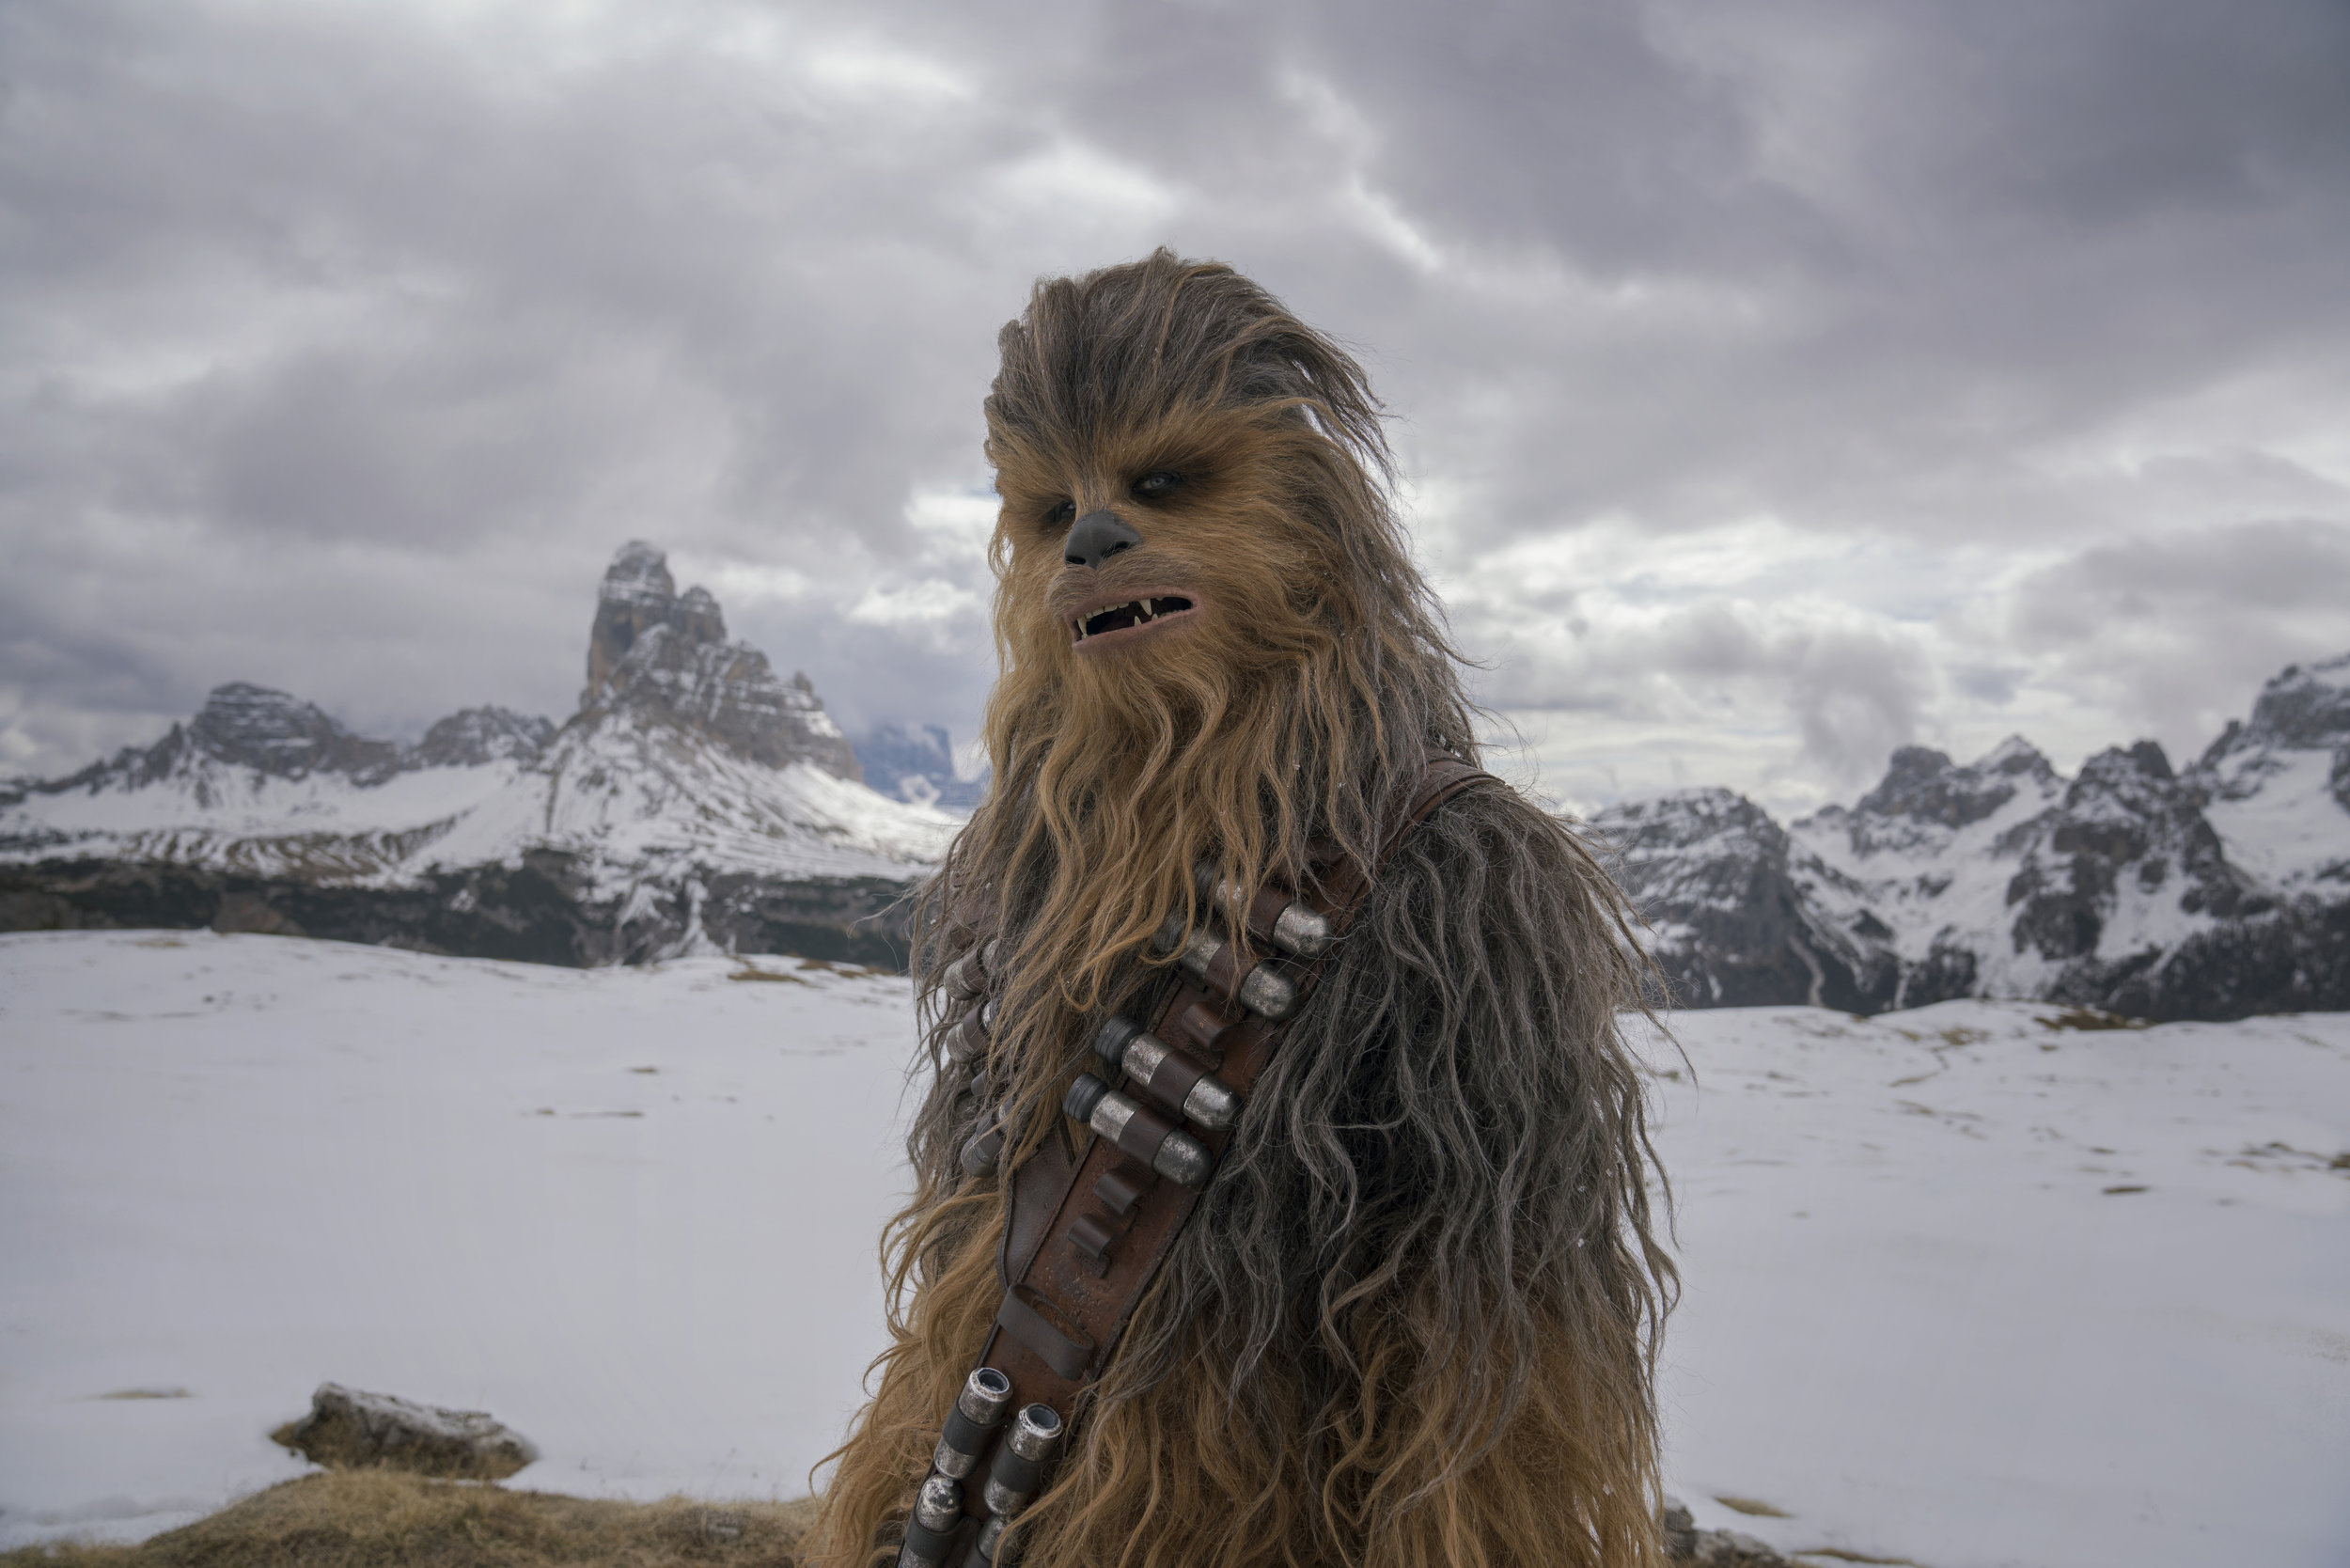 (Insert indecipherable, vaguely threatening, but also kind of adorable, growl here) (Photo courtesy Lucasfilm/Disney)